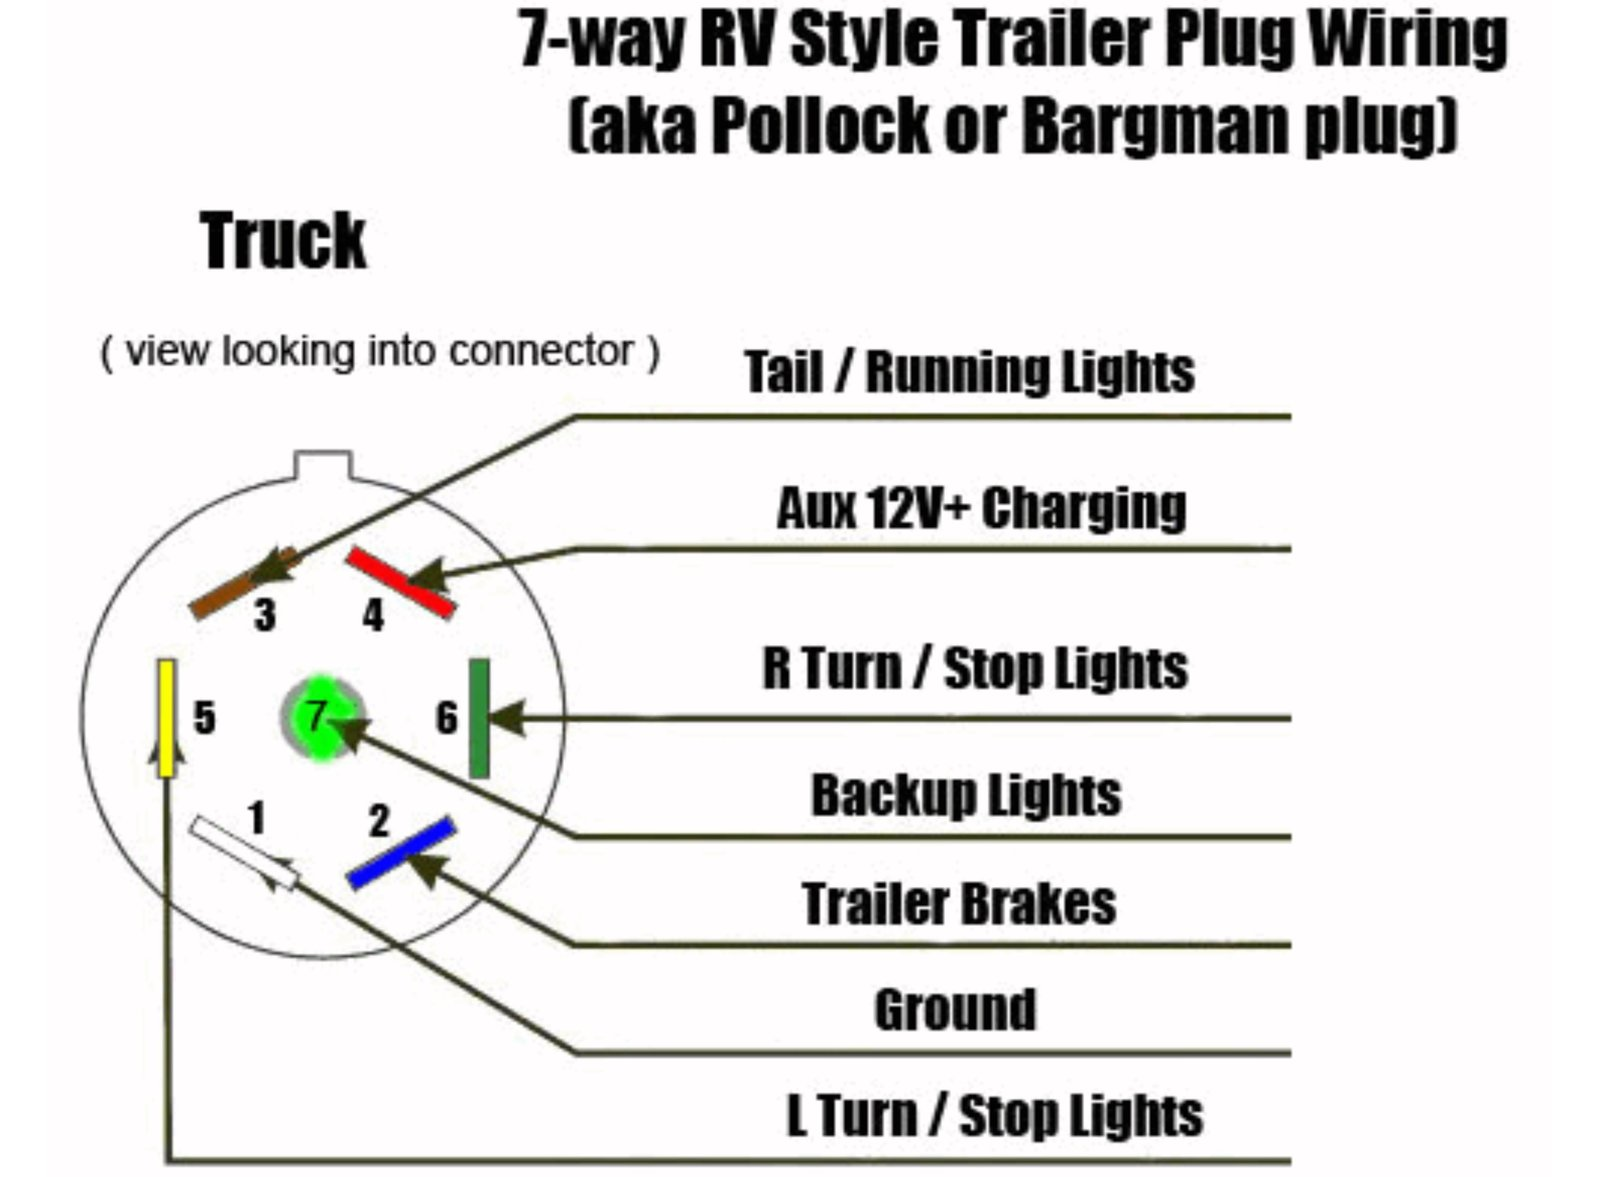 hight resolution of  trailer wiring diagram 2005 chevy mopar flat tow harness arrived page 3 2018 jeep wrangler forums5bccca37 e900 4134 9c72 a01d04f22c44 jpeg